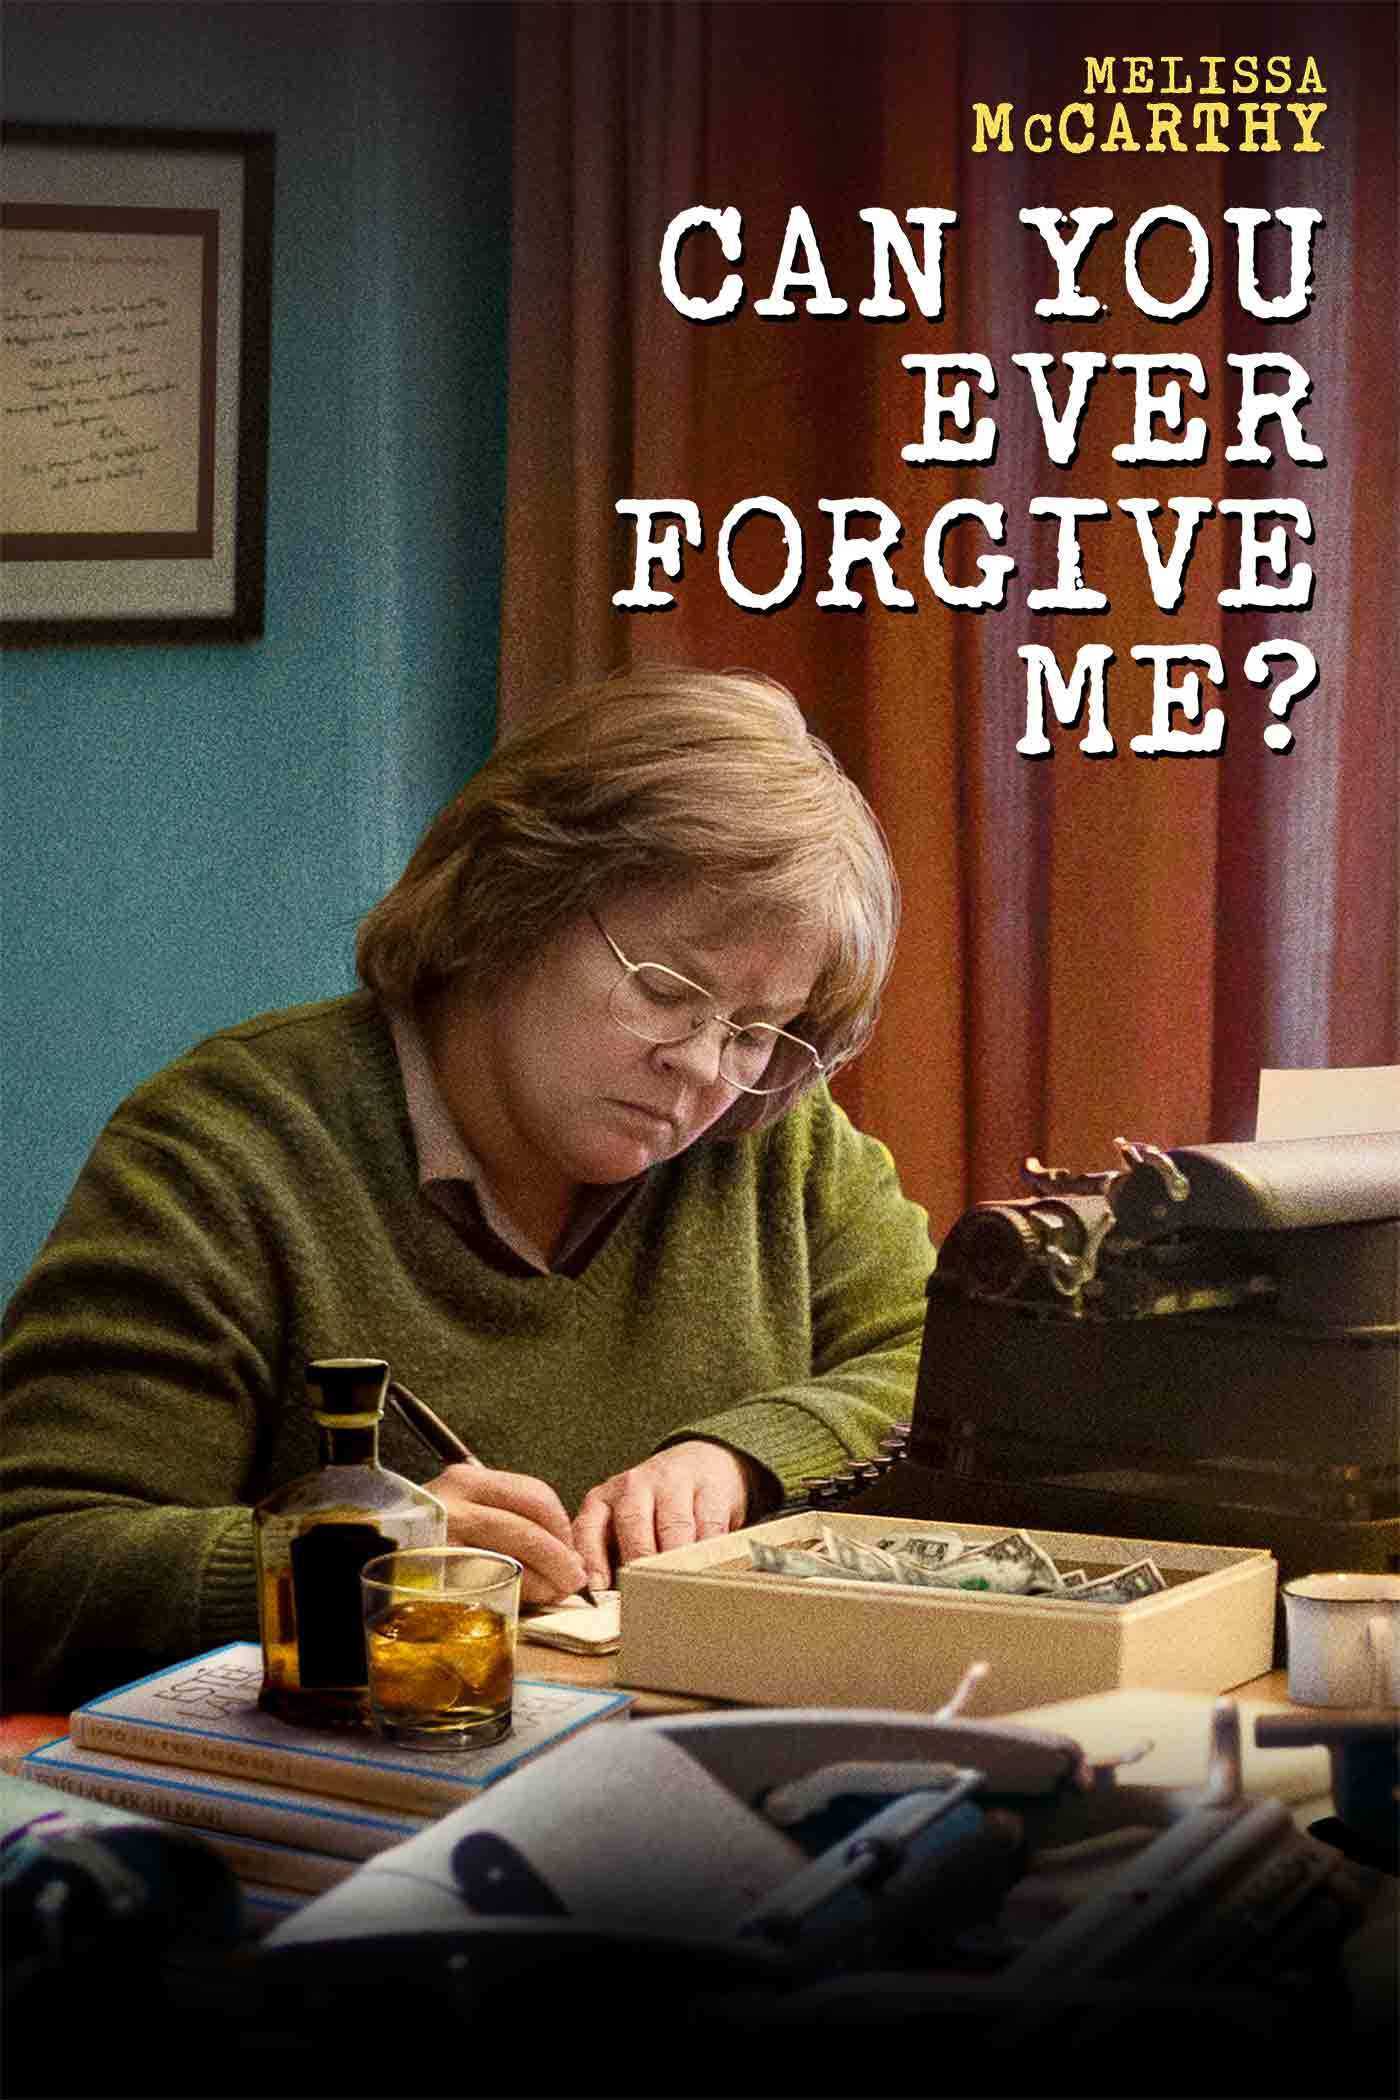 Can You Ever Forgive Me?